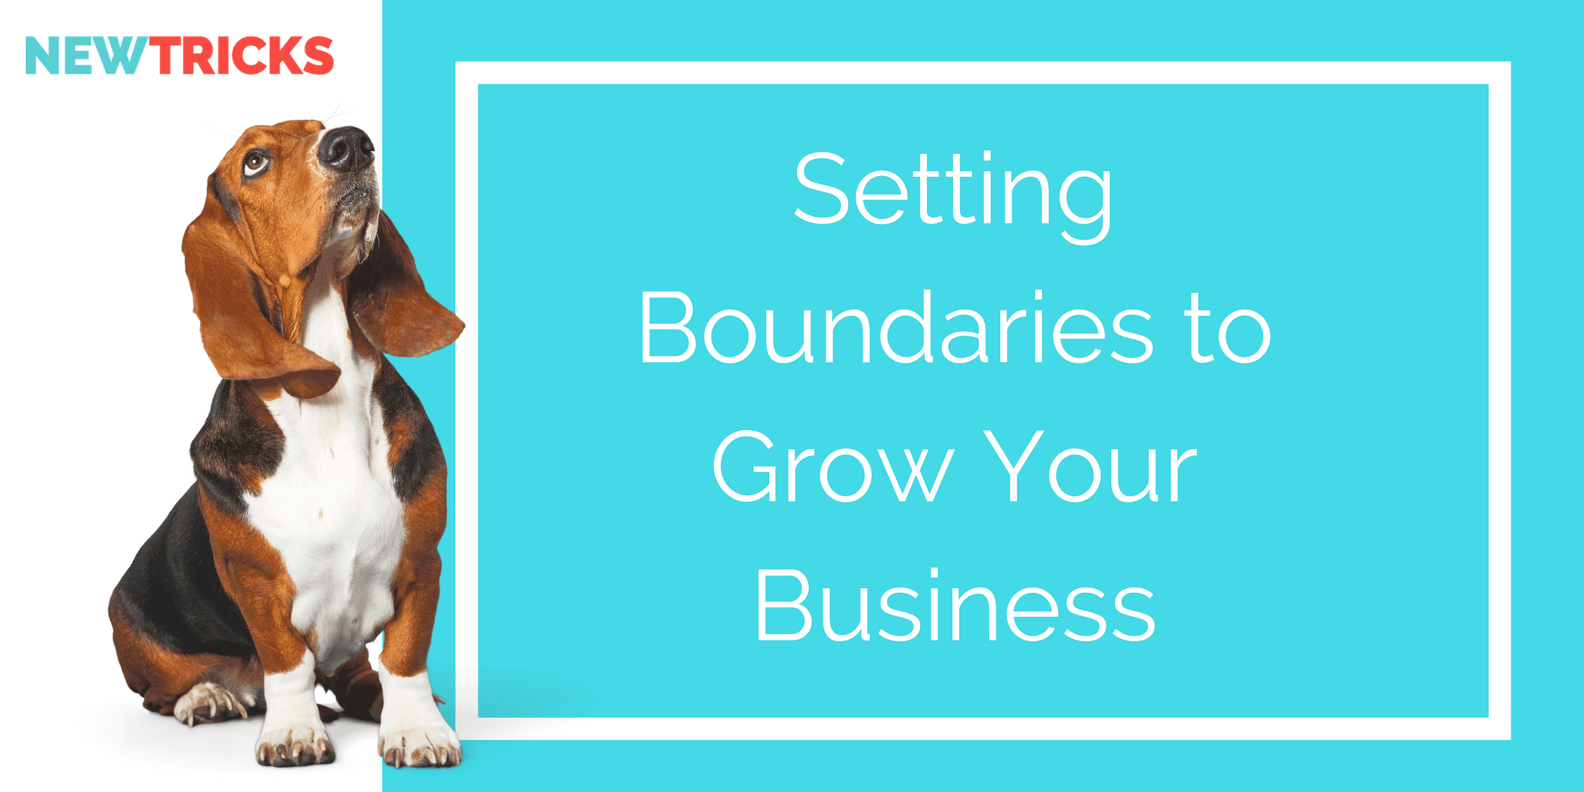 Setting boundaries to grow your business